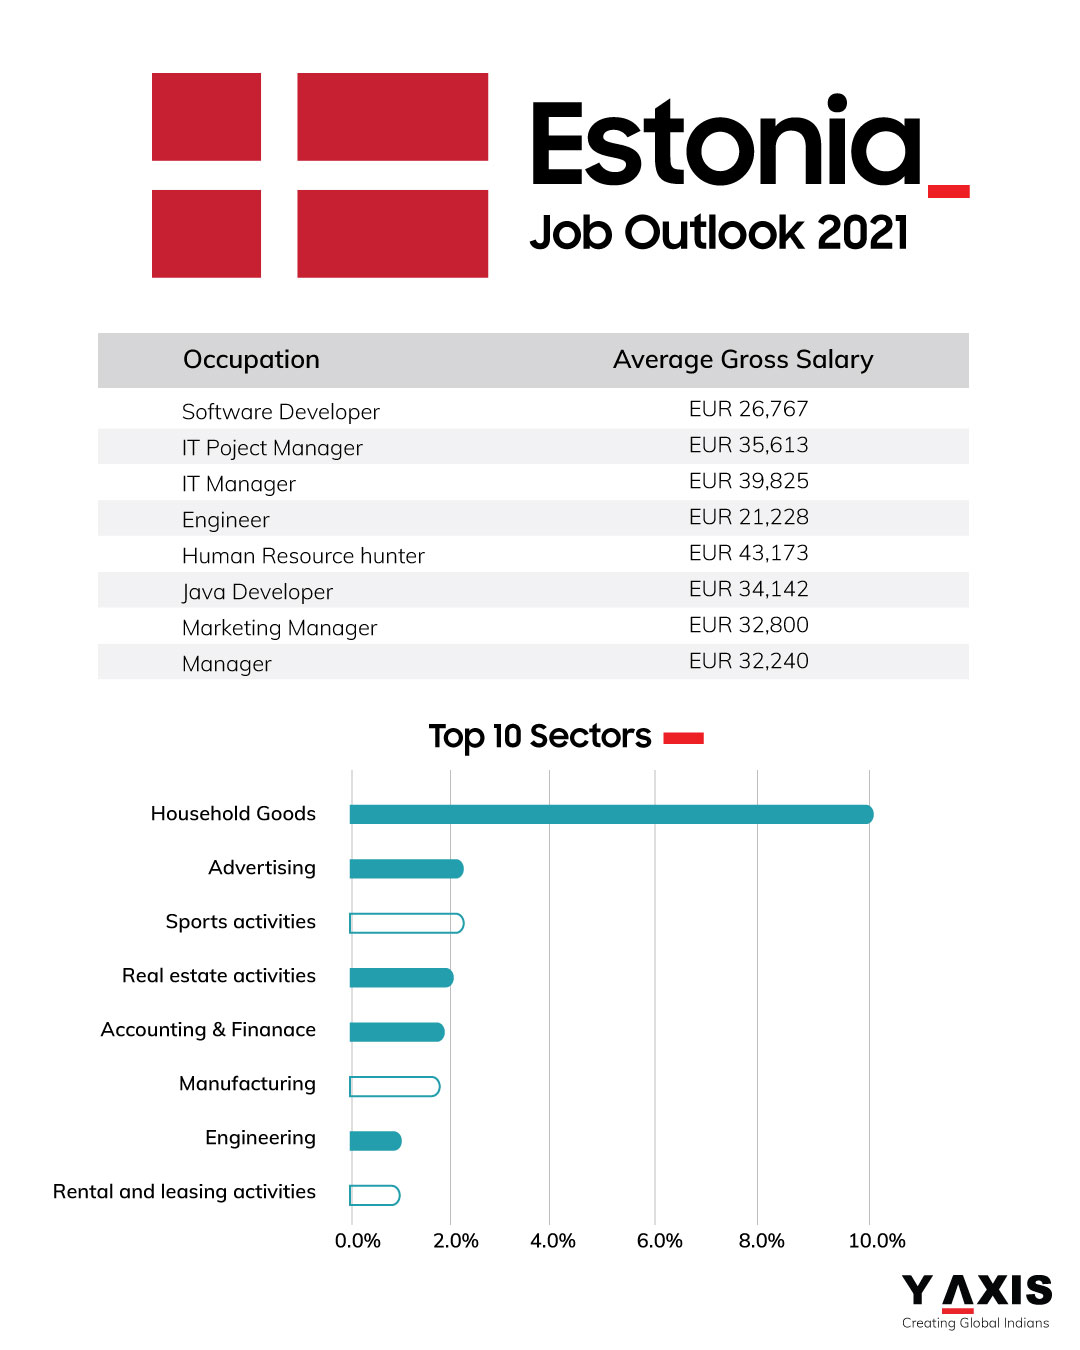 Jobs outlook in Estonia for 2021